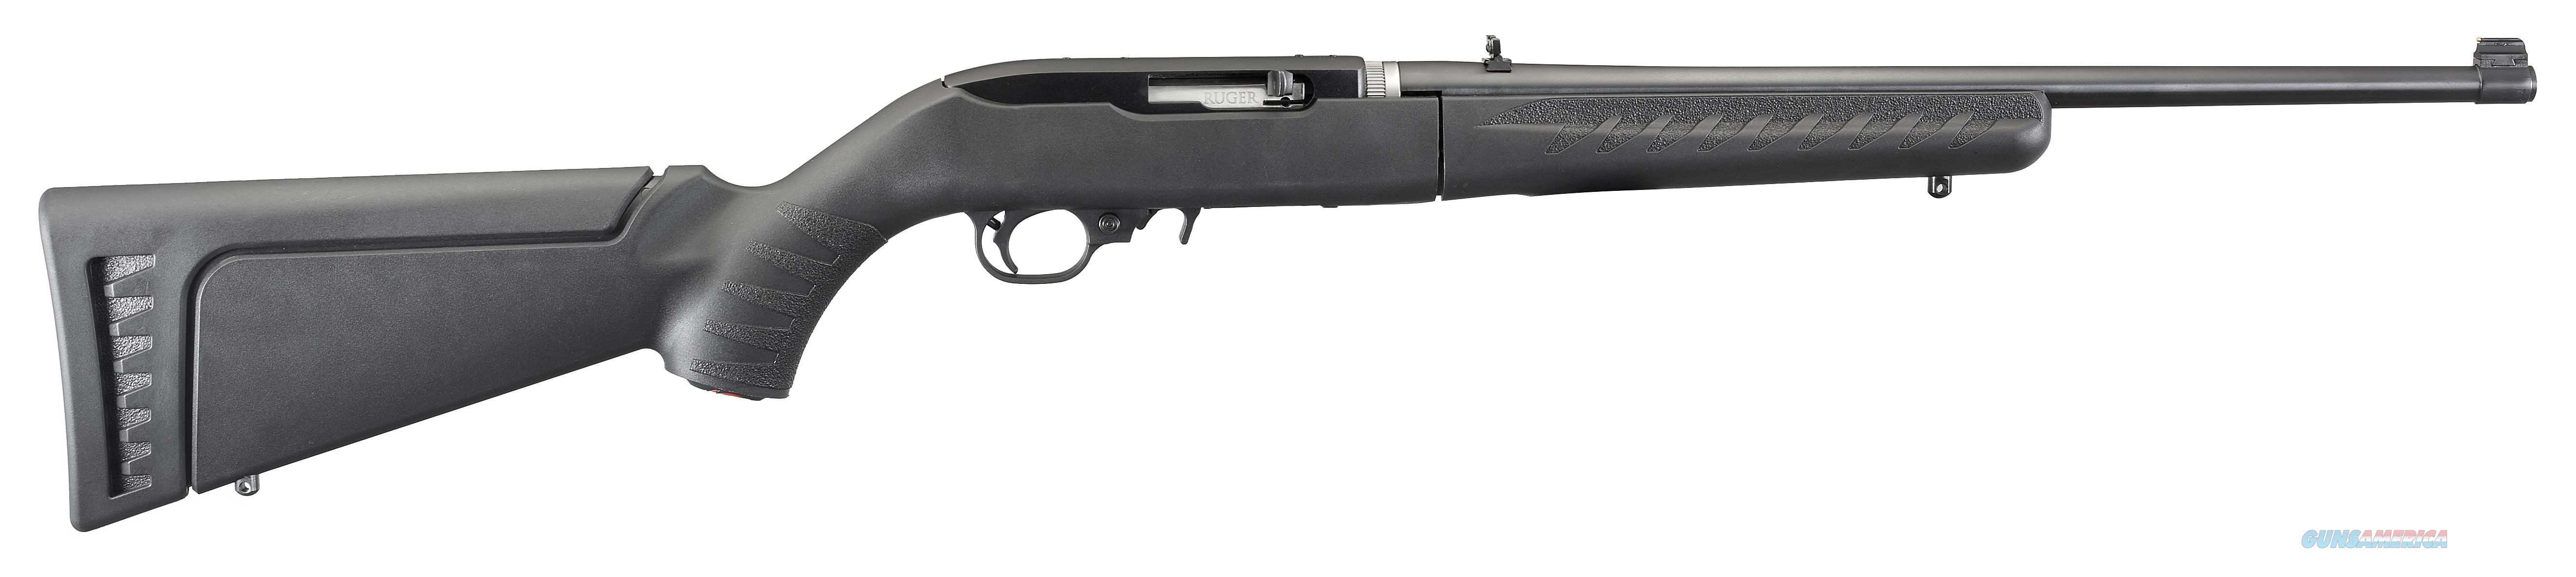 Ruger 21115 10/22 Takedown Semi-Automatic 22 Long Rifle (LR)  10+1 Synthetic Black Stk Blued  Guns > Rifles > R Misc Rifles